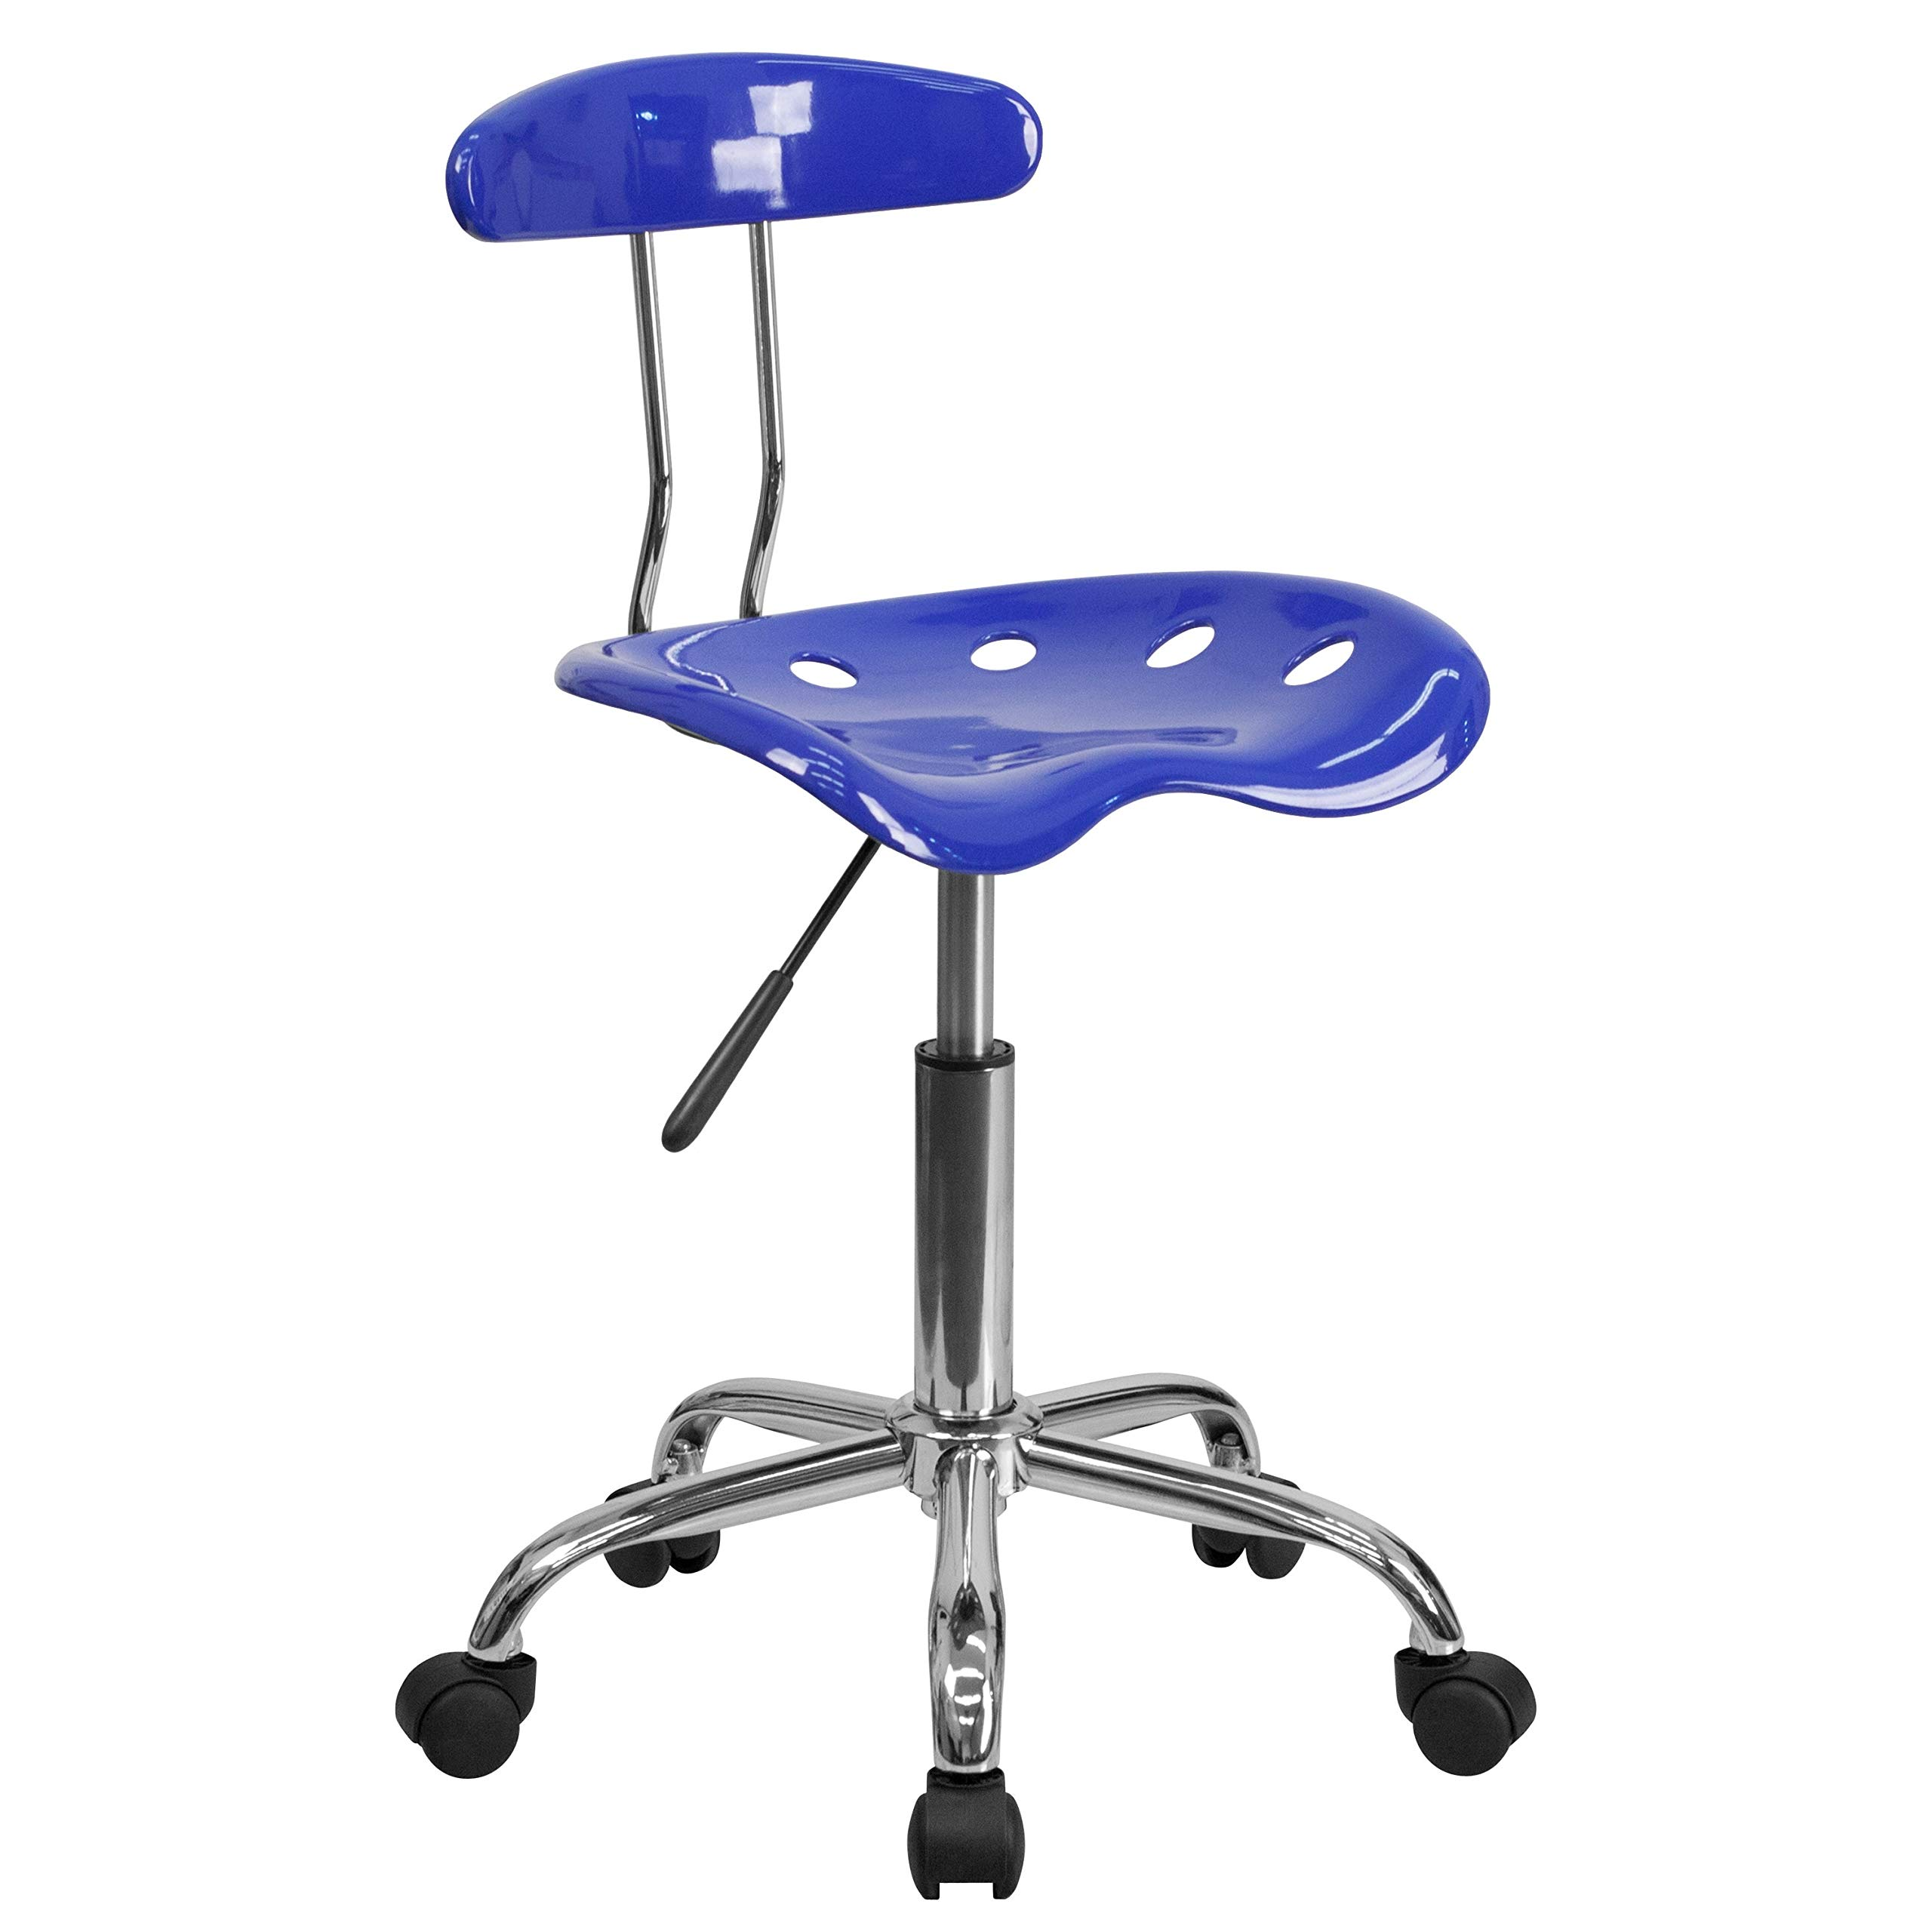 A Line Funiture Saddle Nuatical Blue Home Office Chair with Tractor Seat